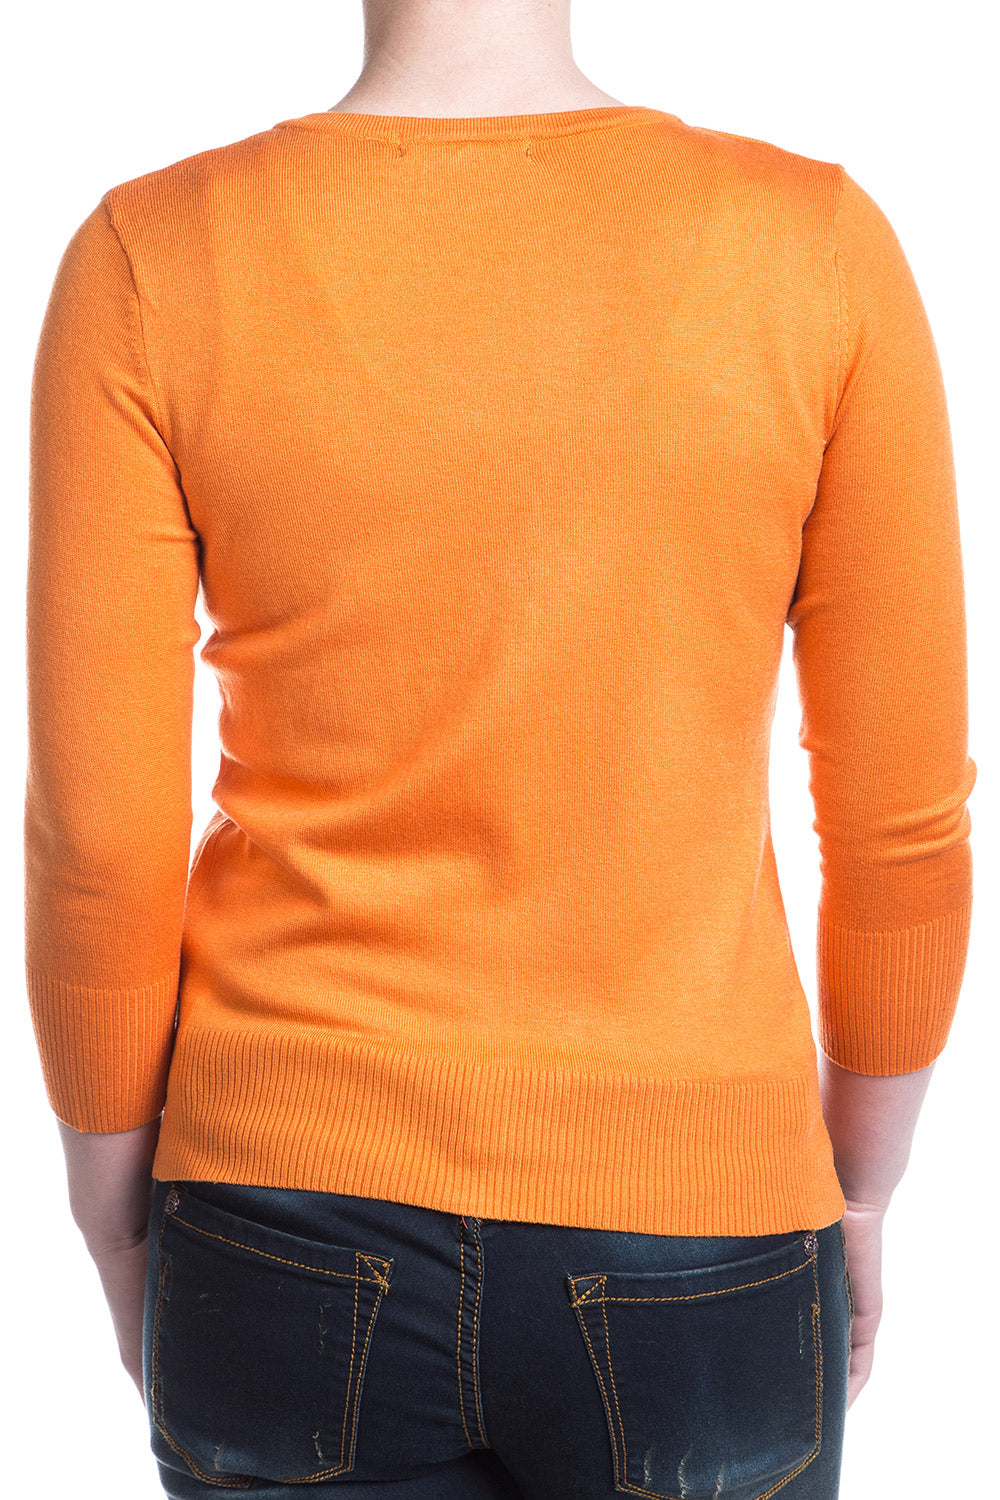 Type 3 Light Orange Cardigan